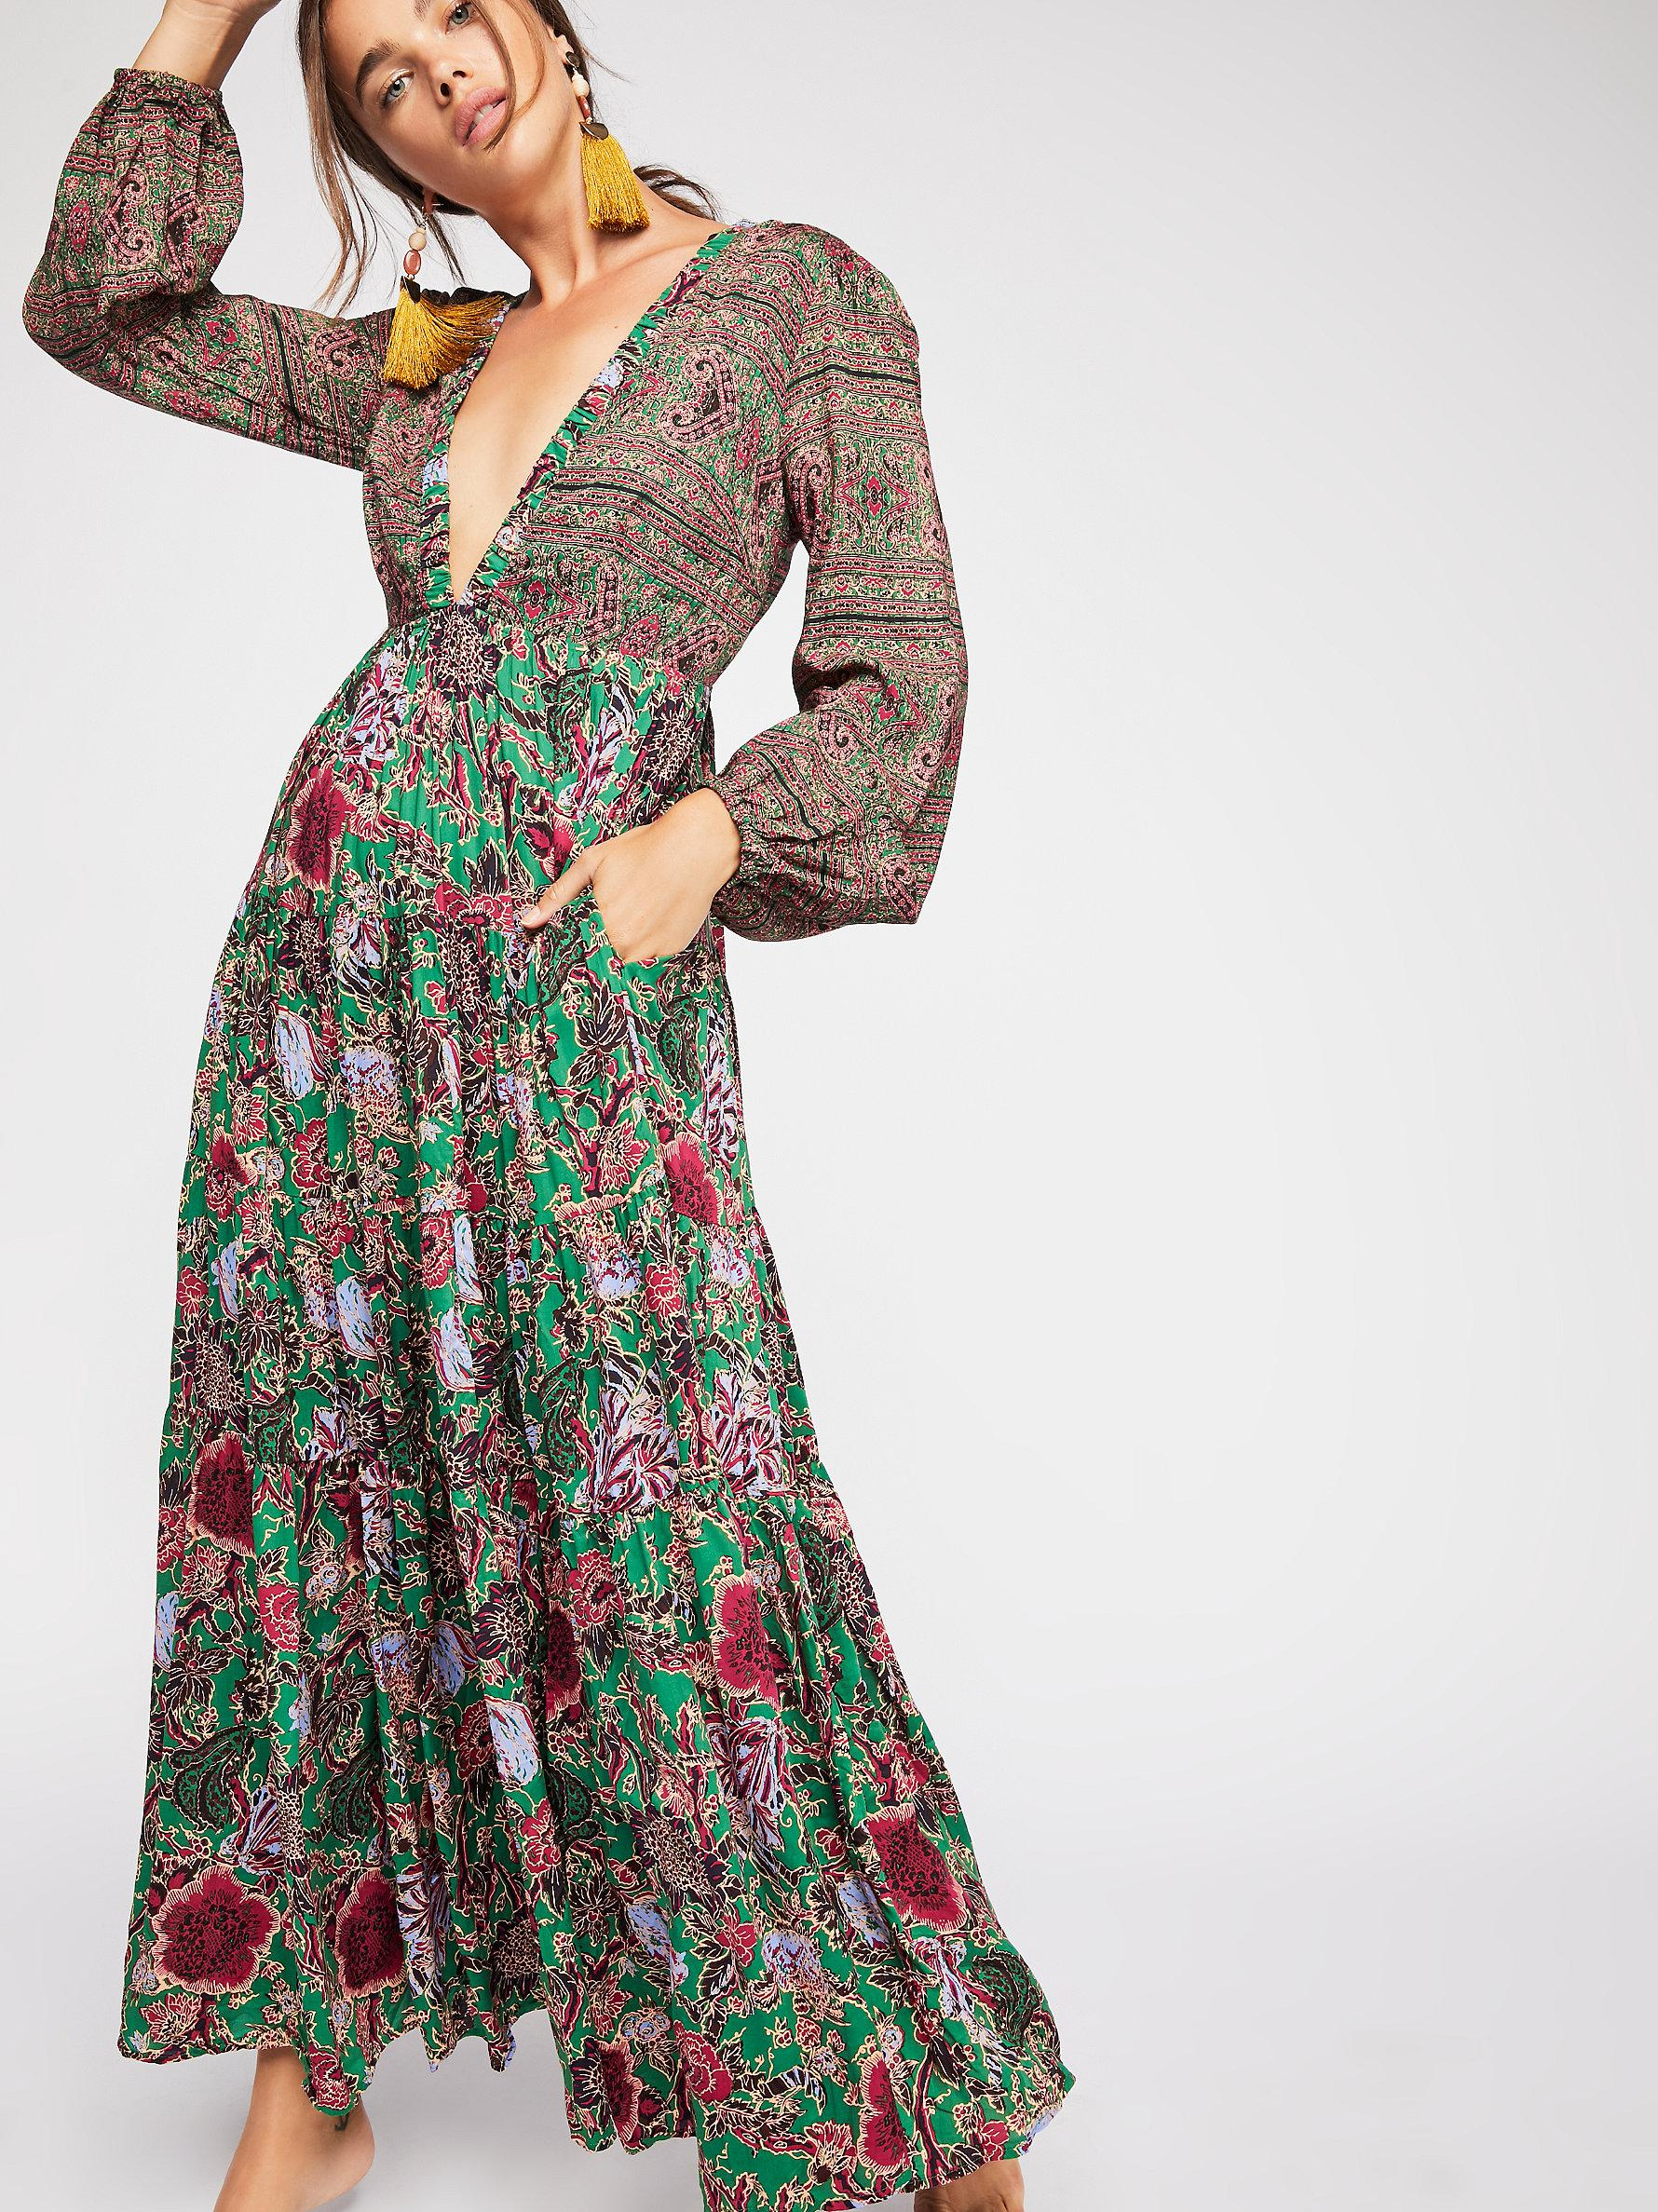 88044d1880a6f Free People Dove Long Sleeve Maxi Dress in Green - Lyst